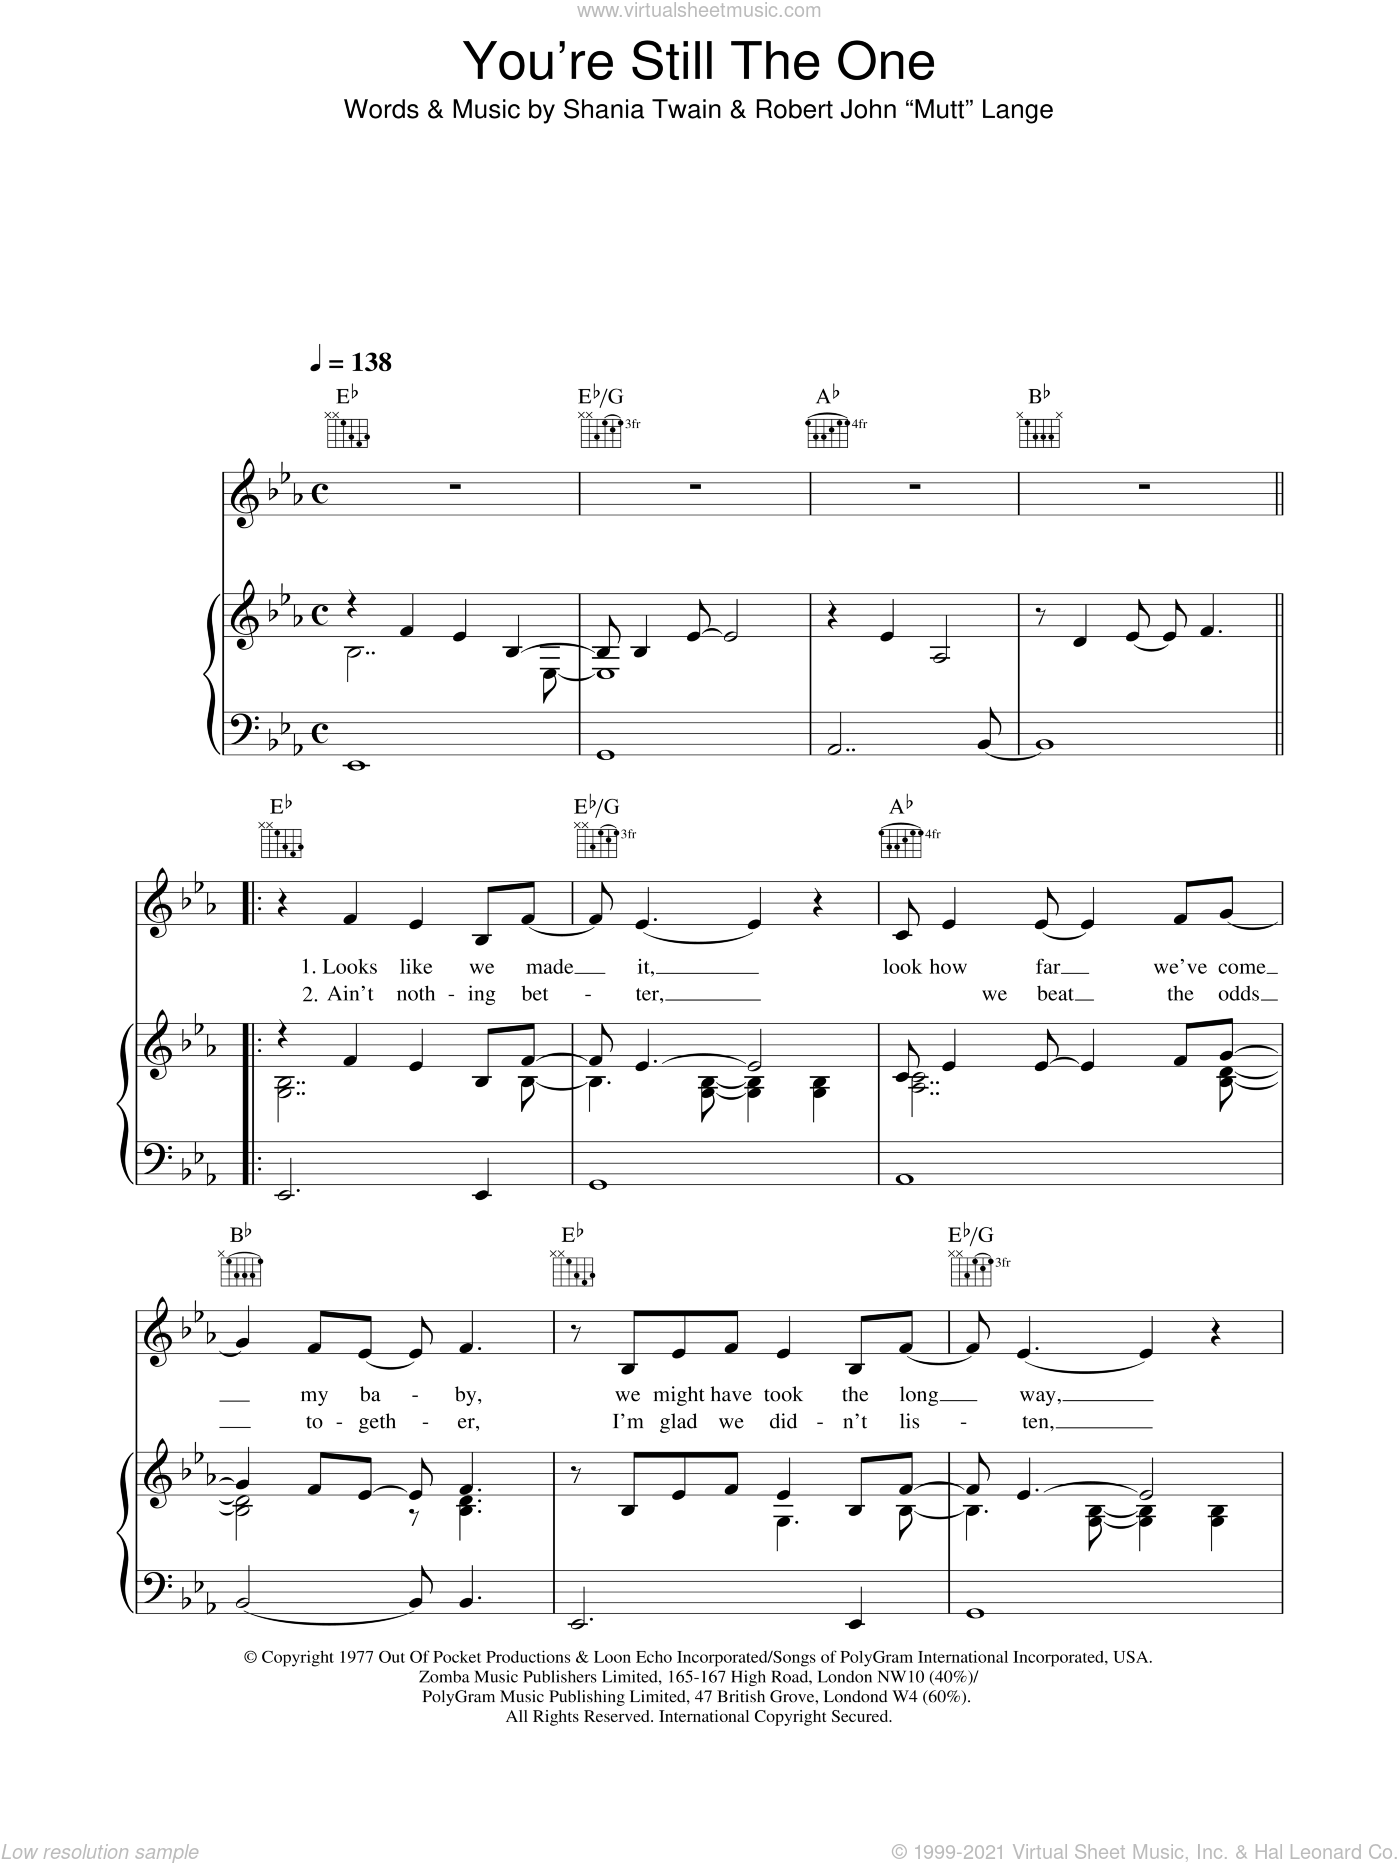 You're Still The One sheet music for voice, piano or guitar by Robert John Lange and Shania Twain. Score Image Preview.